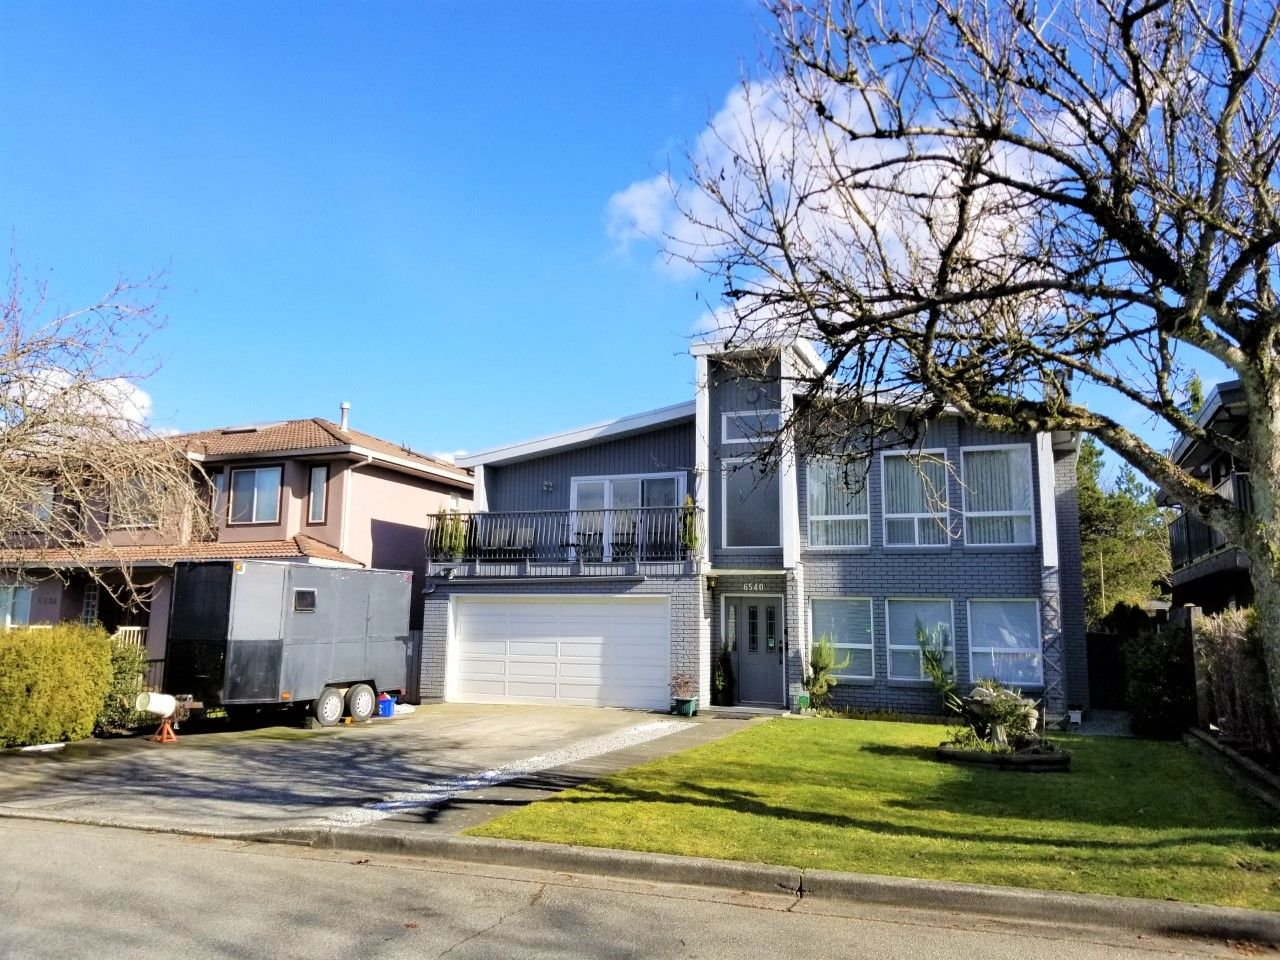 Main Photo: 6540 NOLAN STREET in Burnaby: Upper Deer Lake House for sale (Burnaby South)  : MLS®# R2537360